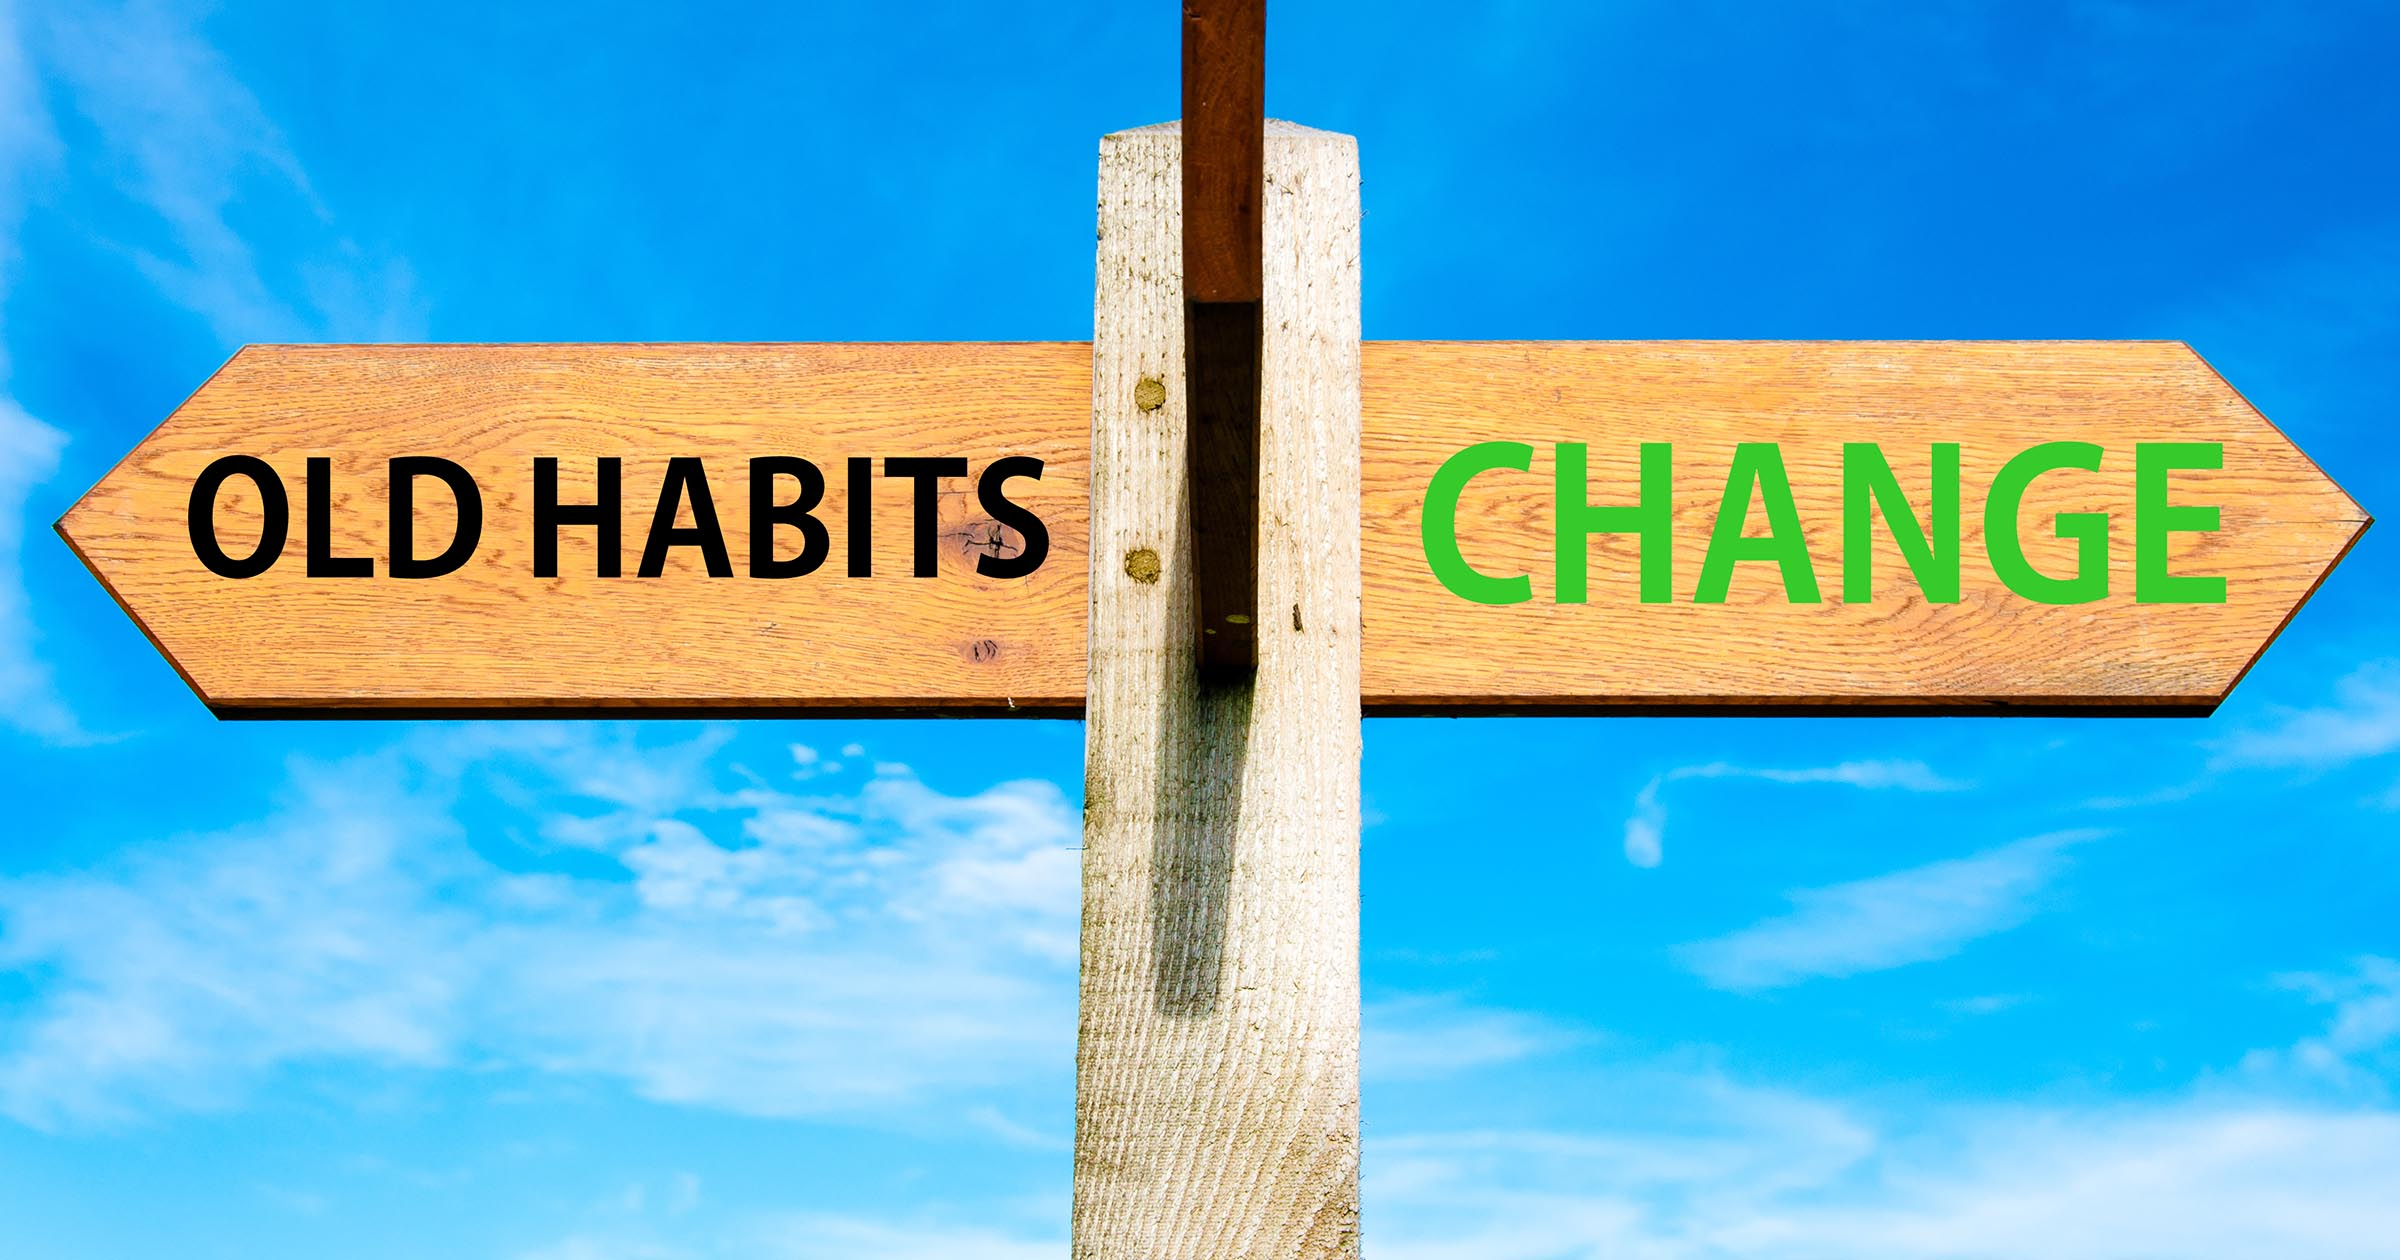 Old Habits versus Change